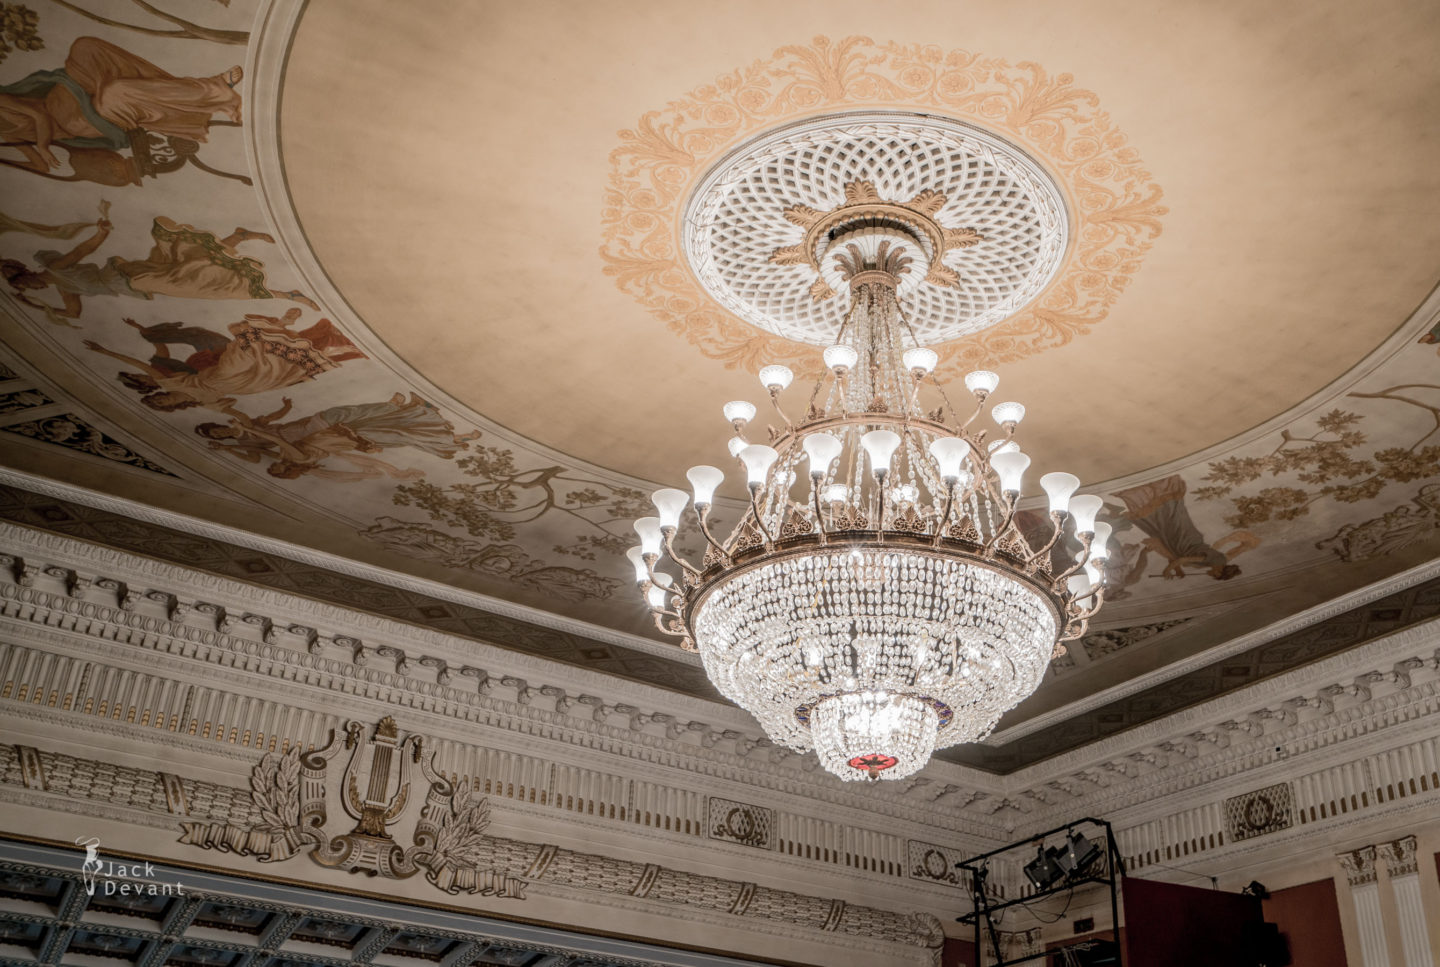 Perm Opera and Ballet Theatre Chandelier